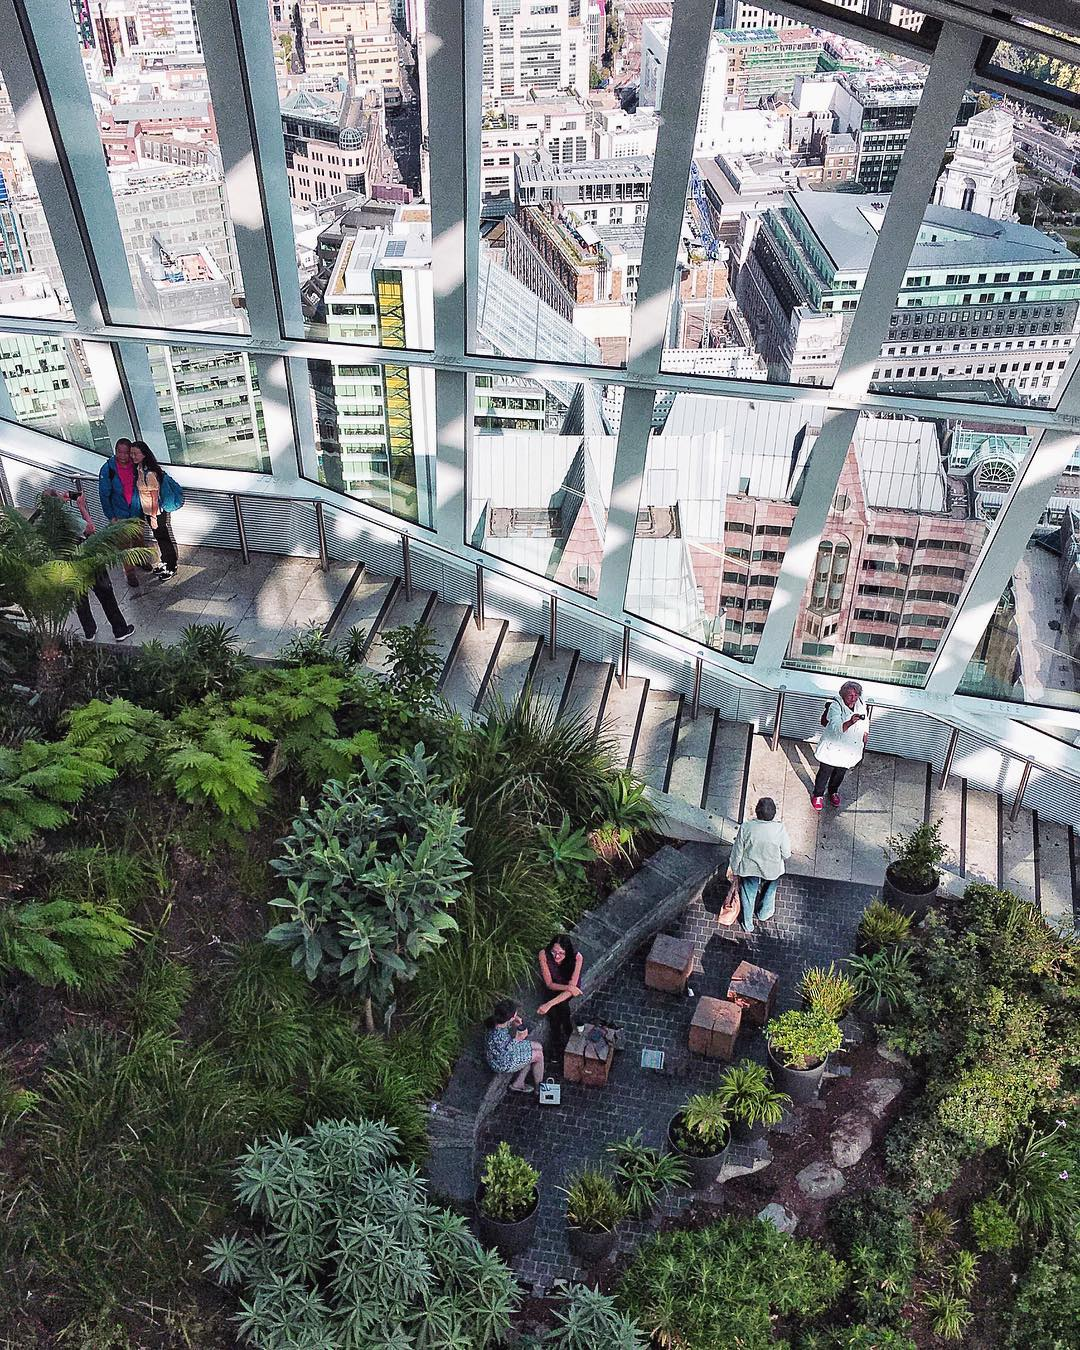 59bba35a93e4a Sky Garden, London: How To See Free Views Of The City From The Top ...